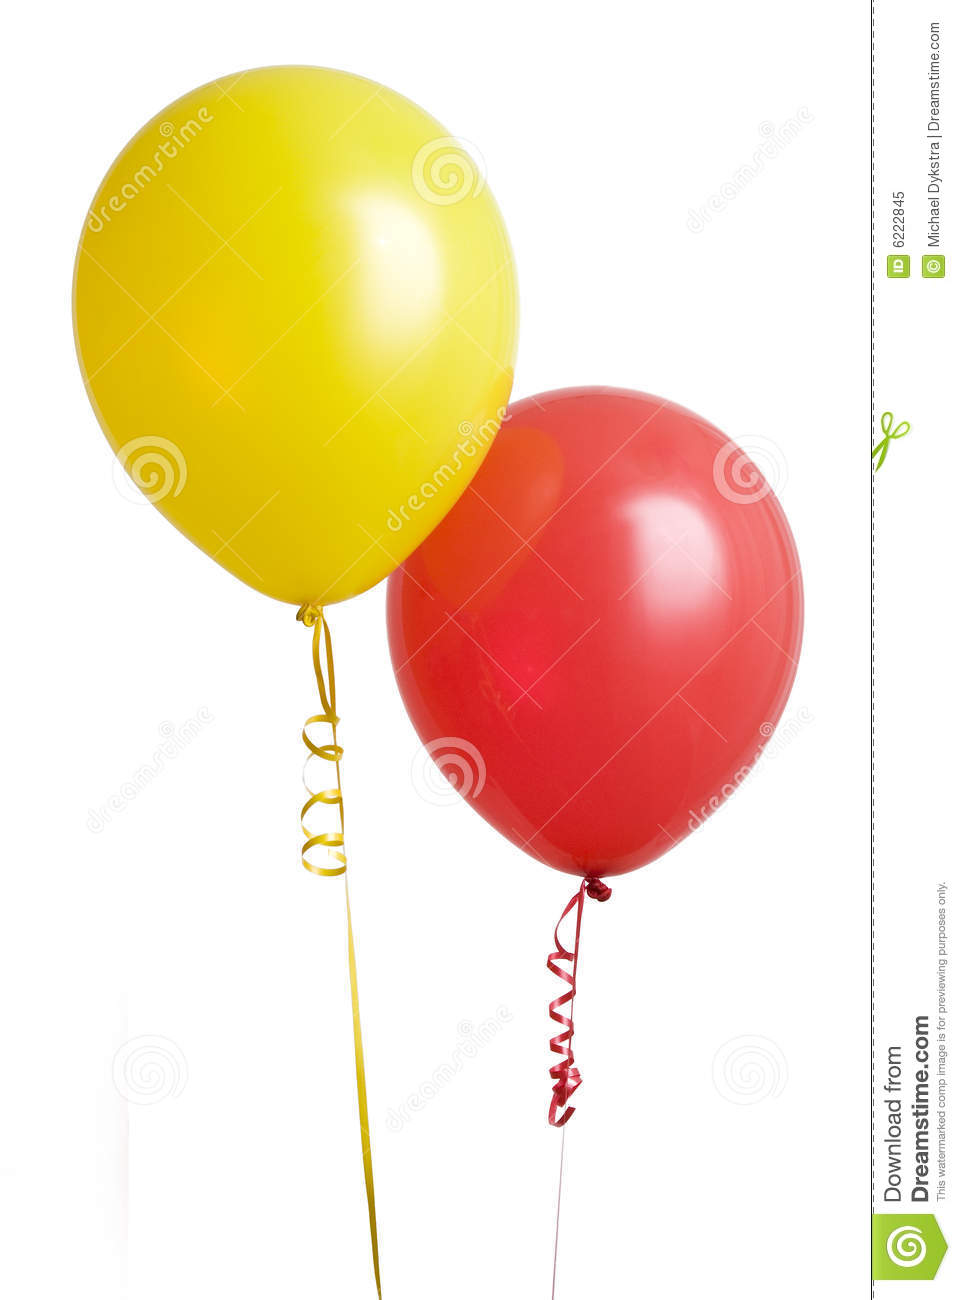 Red And Yellow Balloon Royalty Free Stock Photo - Image: 6222845